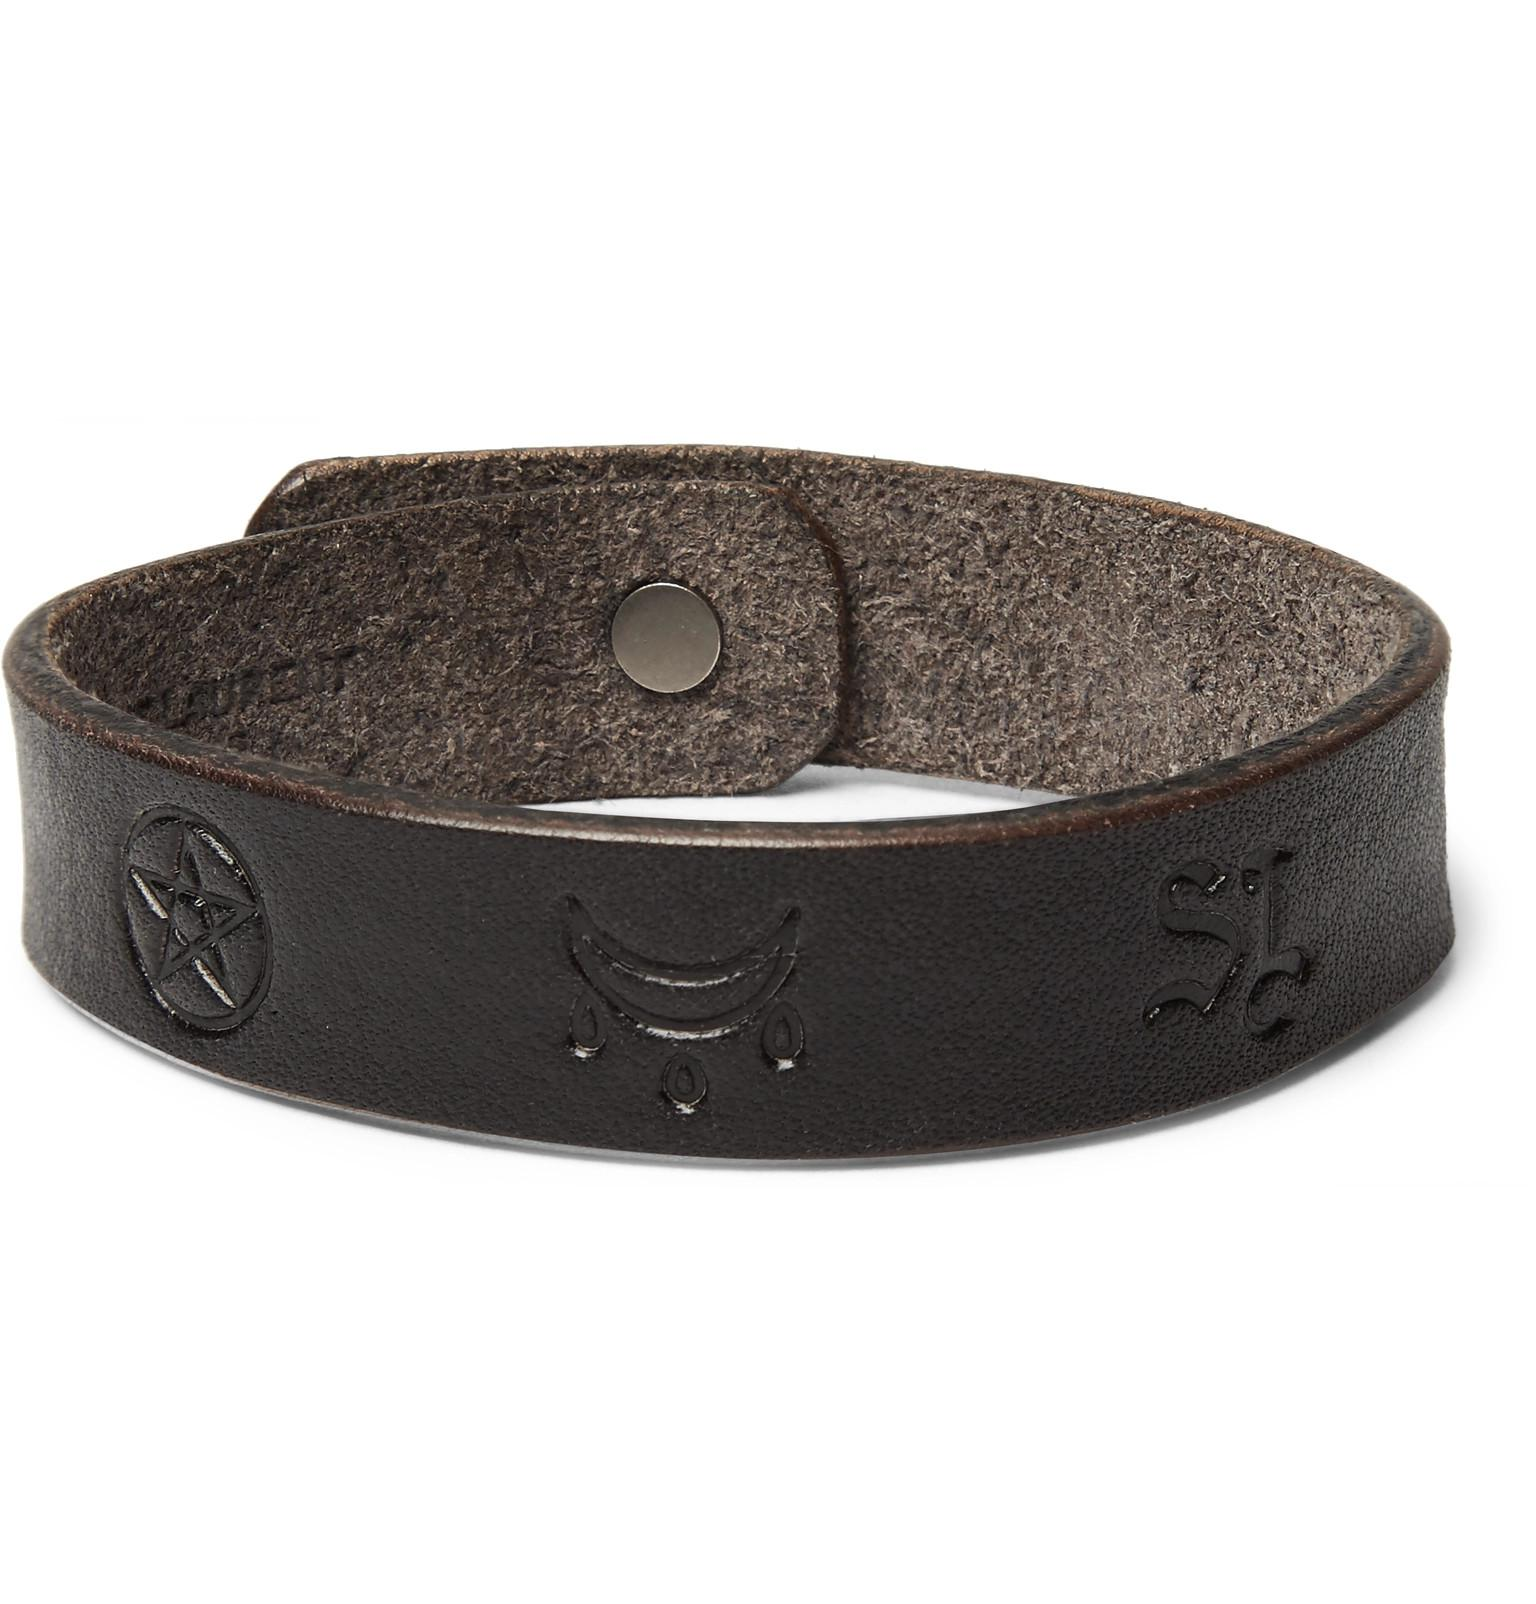 43b9a1a129c Saint Laurent Embossed Leather Bracelet in Brown for Men - Lyst